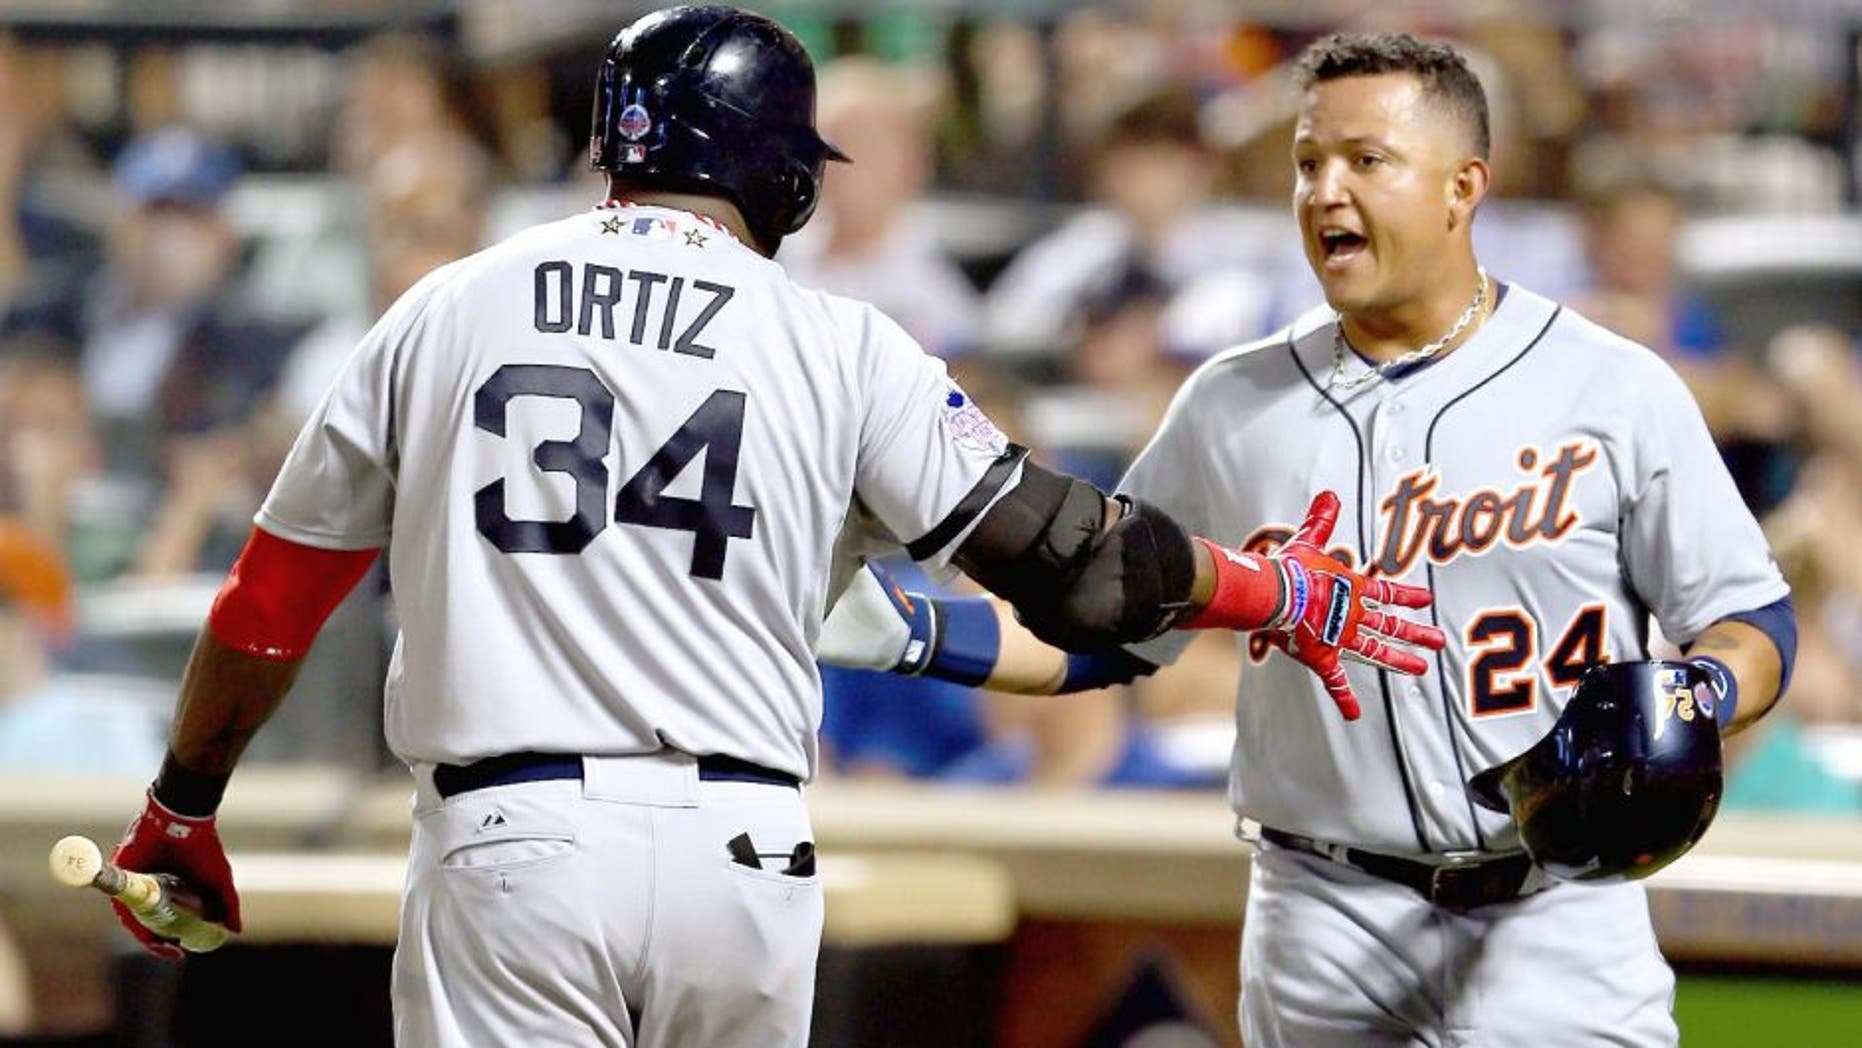 NEW YORK, NY - JULY 16: American League All-Star David Ortiz #34 of the Boston Red Sox greets American League All-Star Miguel Cabrera #24 of the Detroit Tigers after Cabrera scored in the fourth inning during the 84th MLB All-Star Game on July 16, 2013 at Citi Field in the Flushing neighborhood of the Queens borough of New York City. (Photo by Mike Ehrmann/Getty Images)